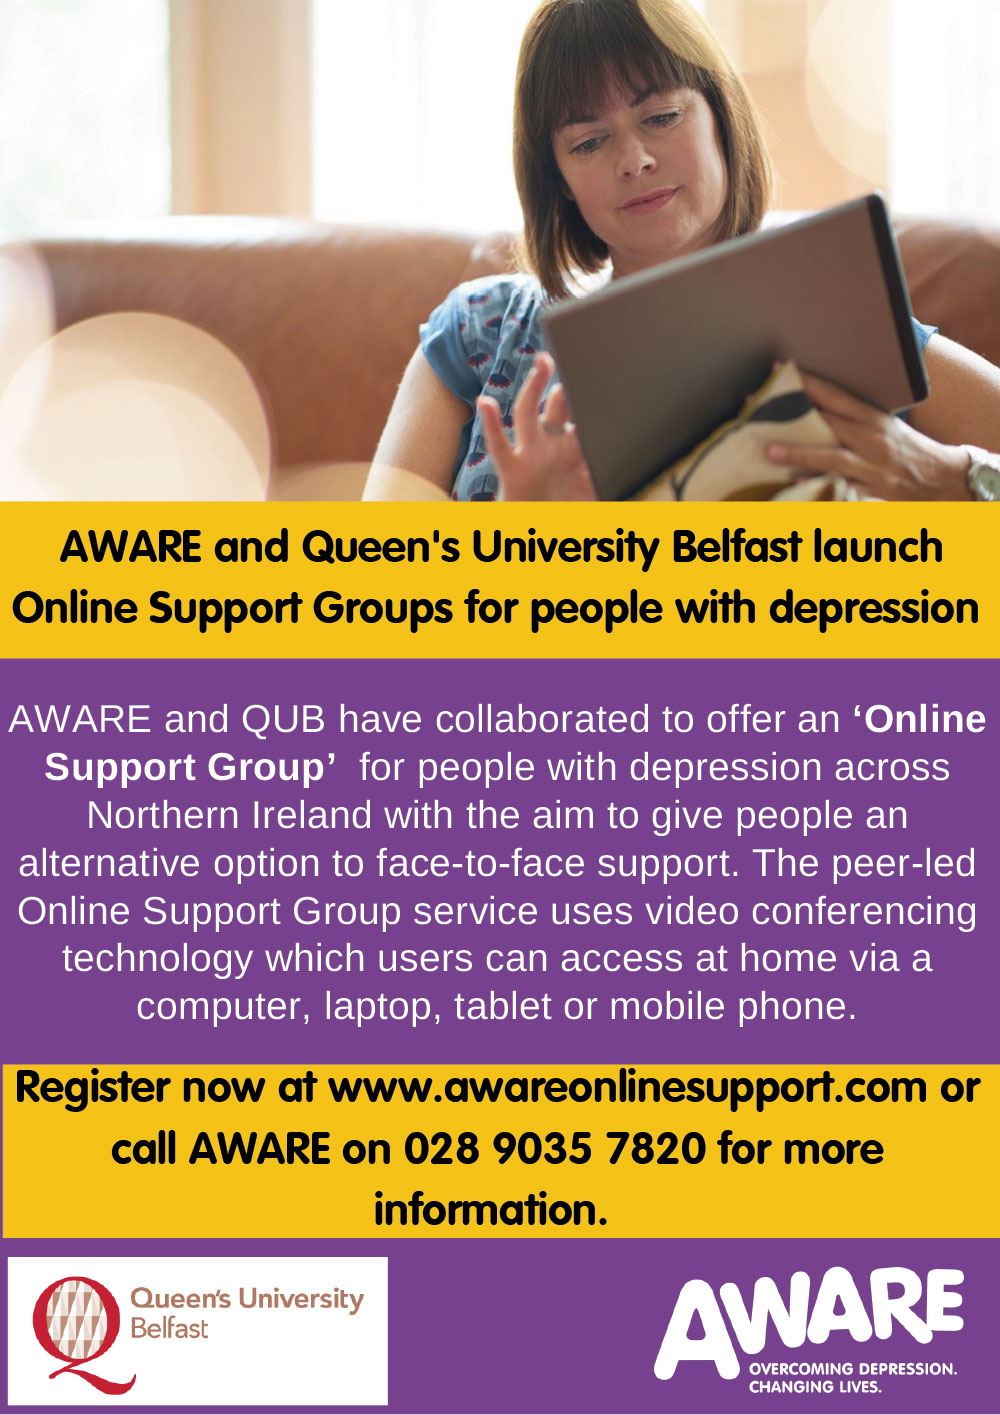 Launch of Online Support Groups